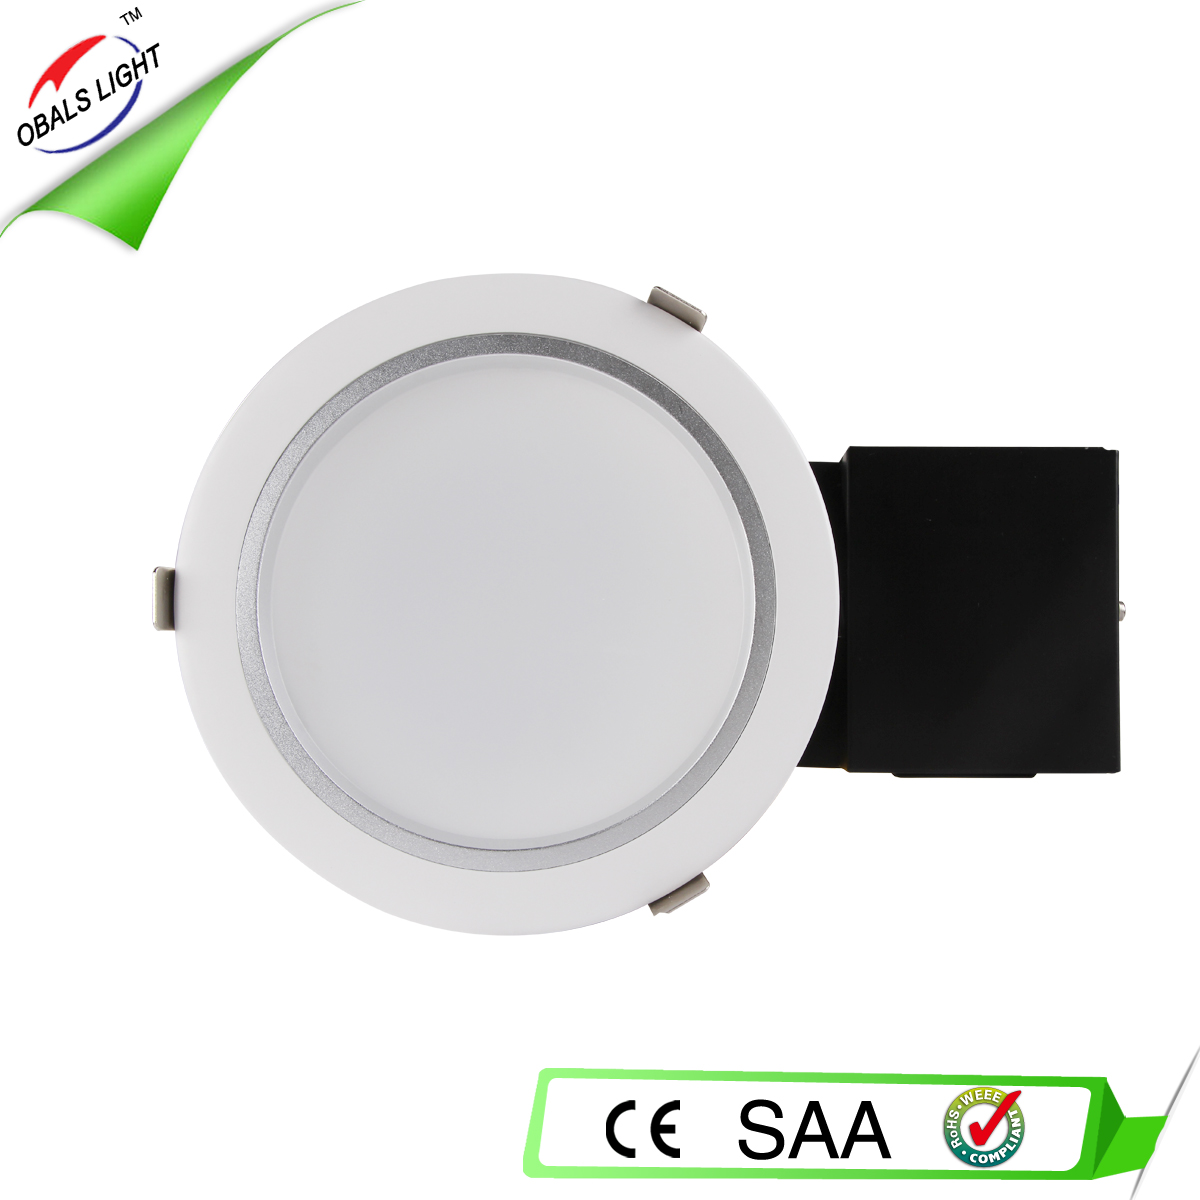 30w led downlight recessed smd recessed install CE ROHS SAA approved